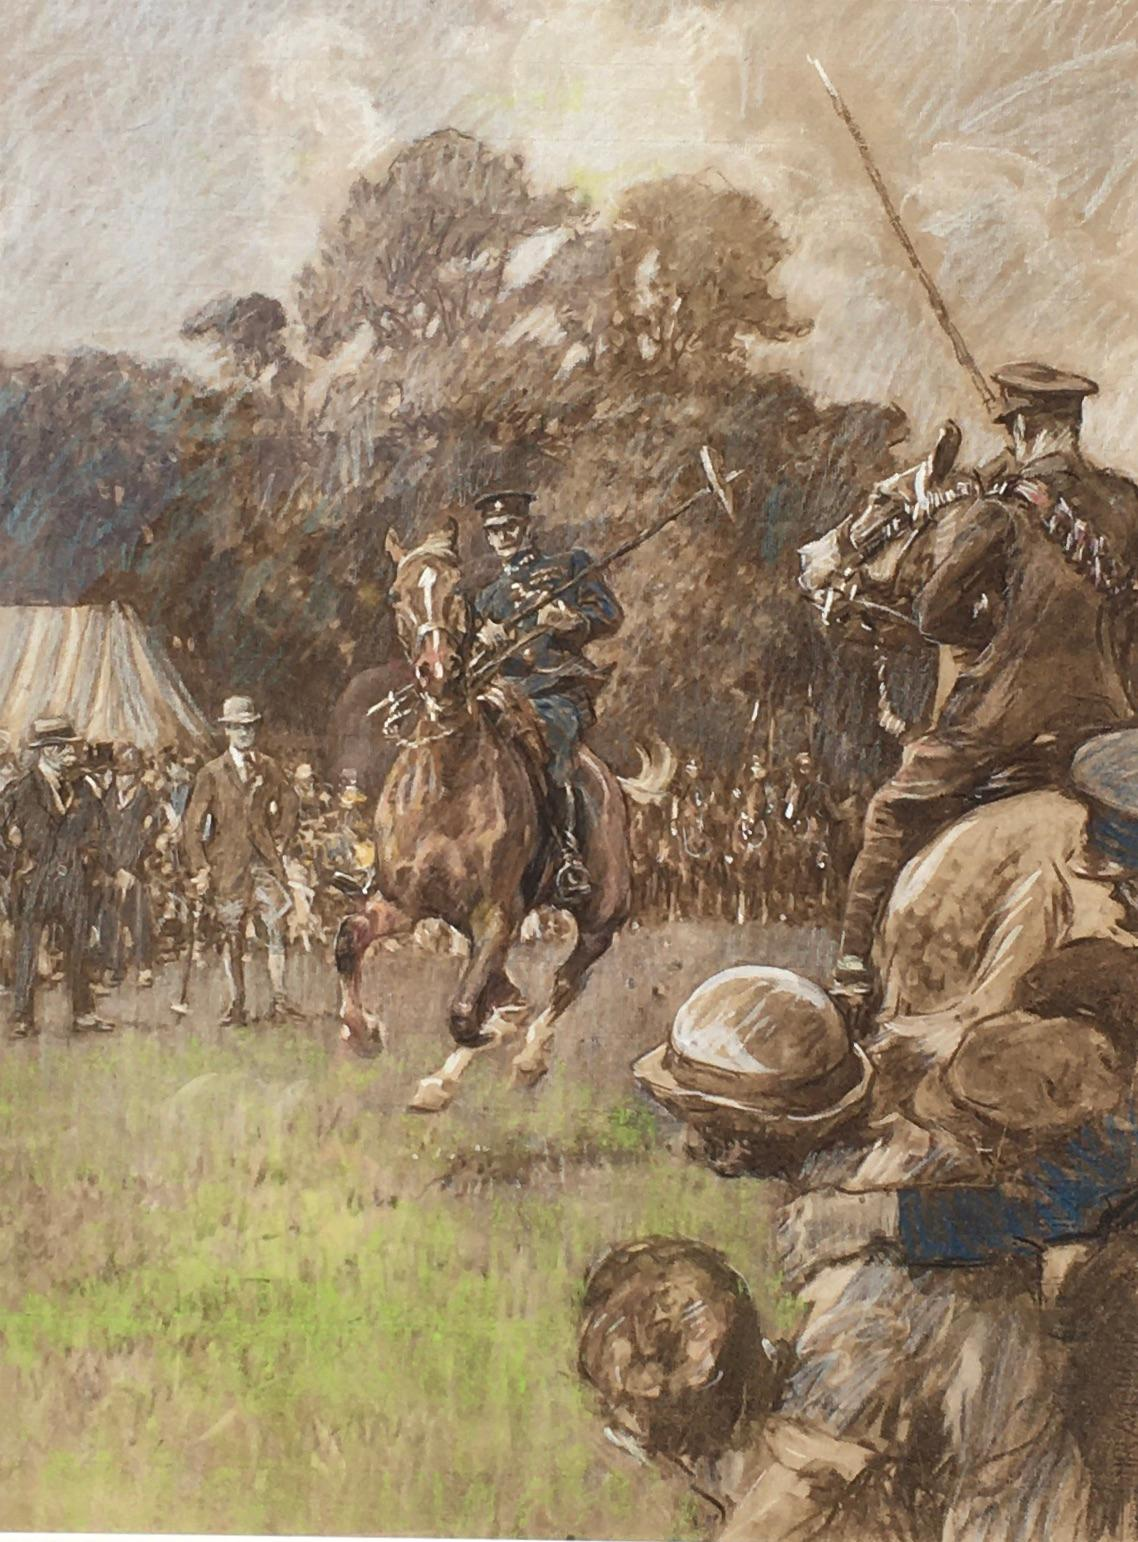 Tent-Pegging - Early 20th Century British Sporting Drawing by Gilbert Holiday